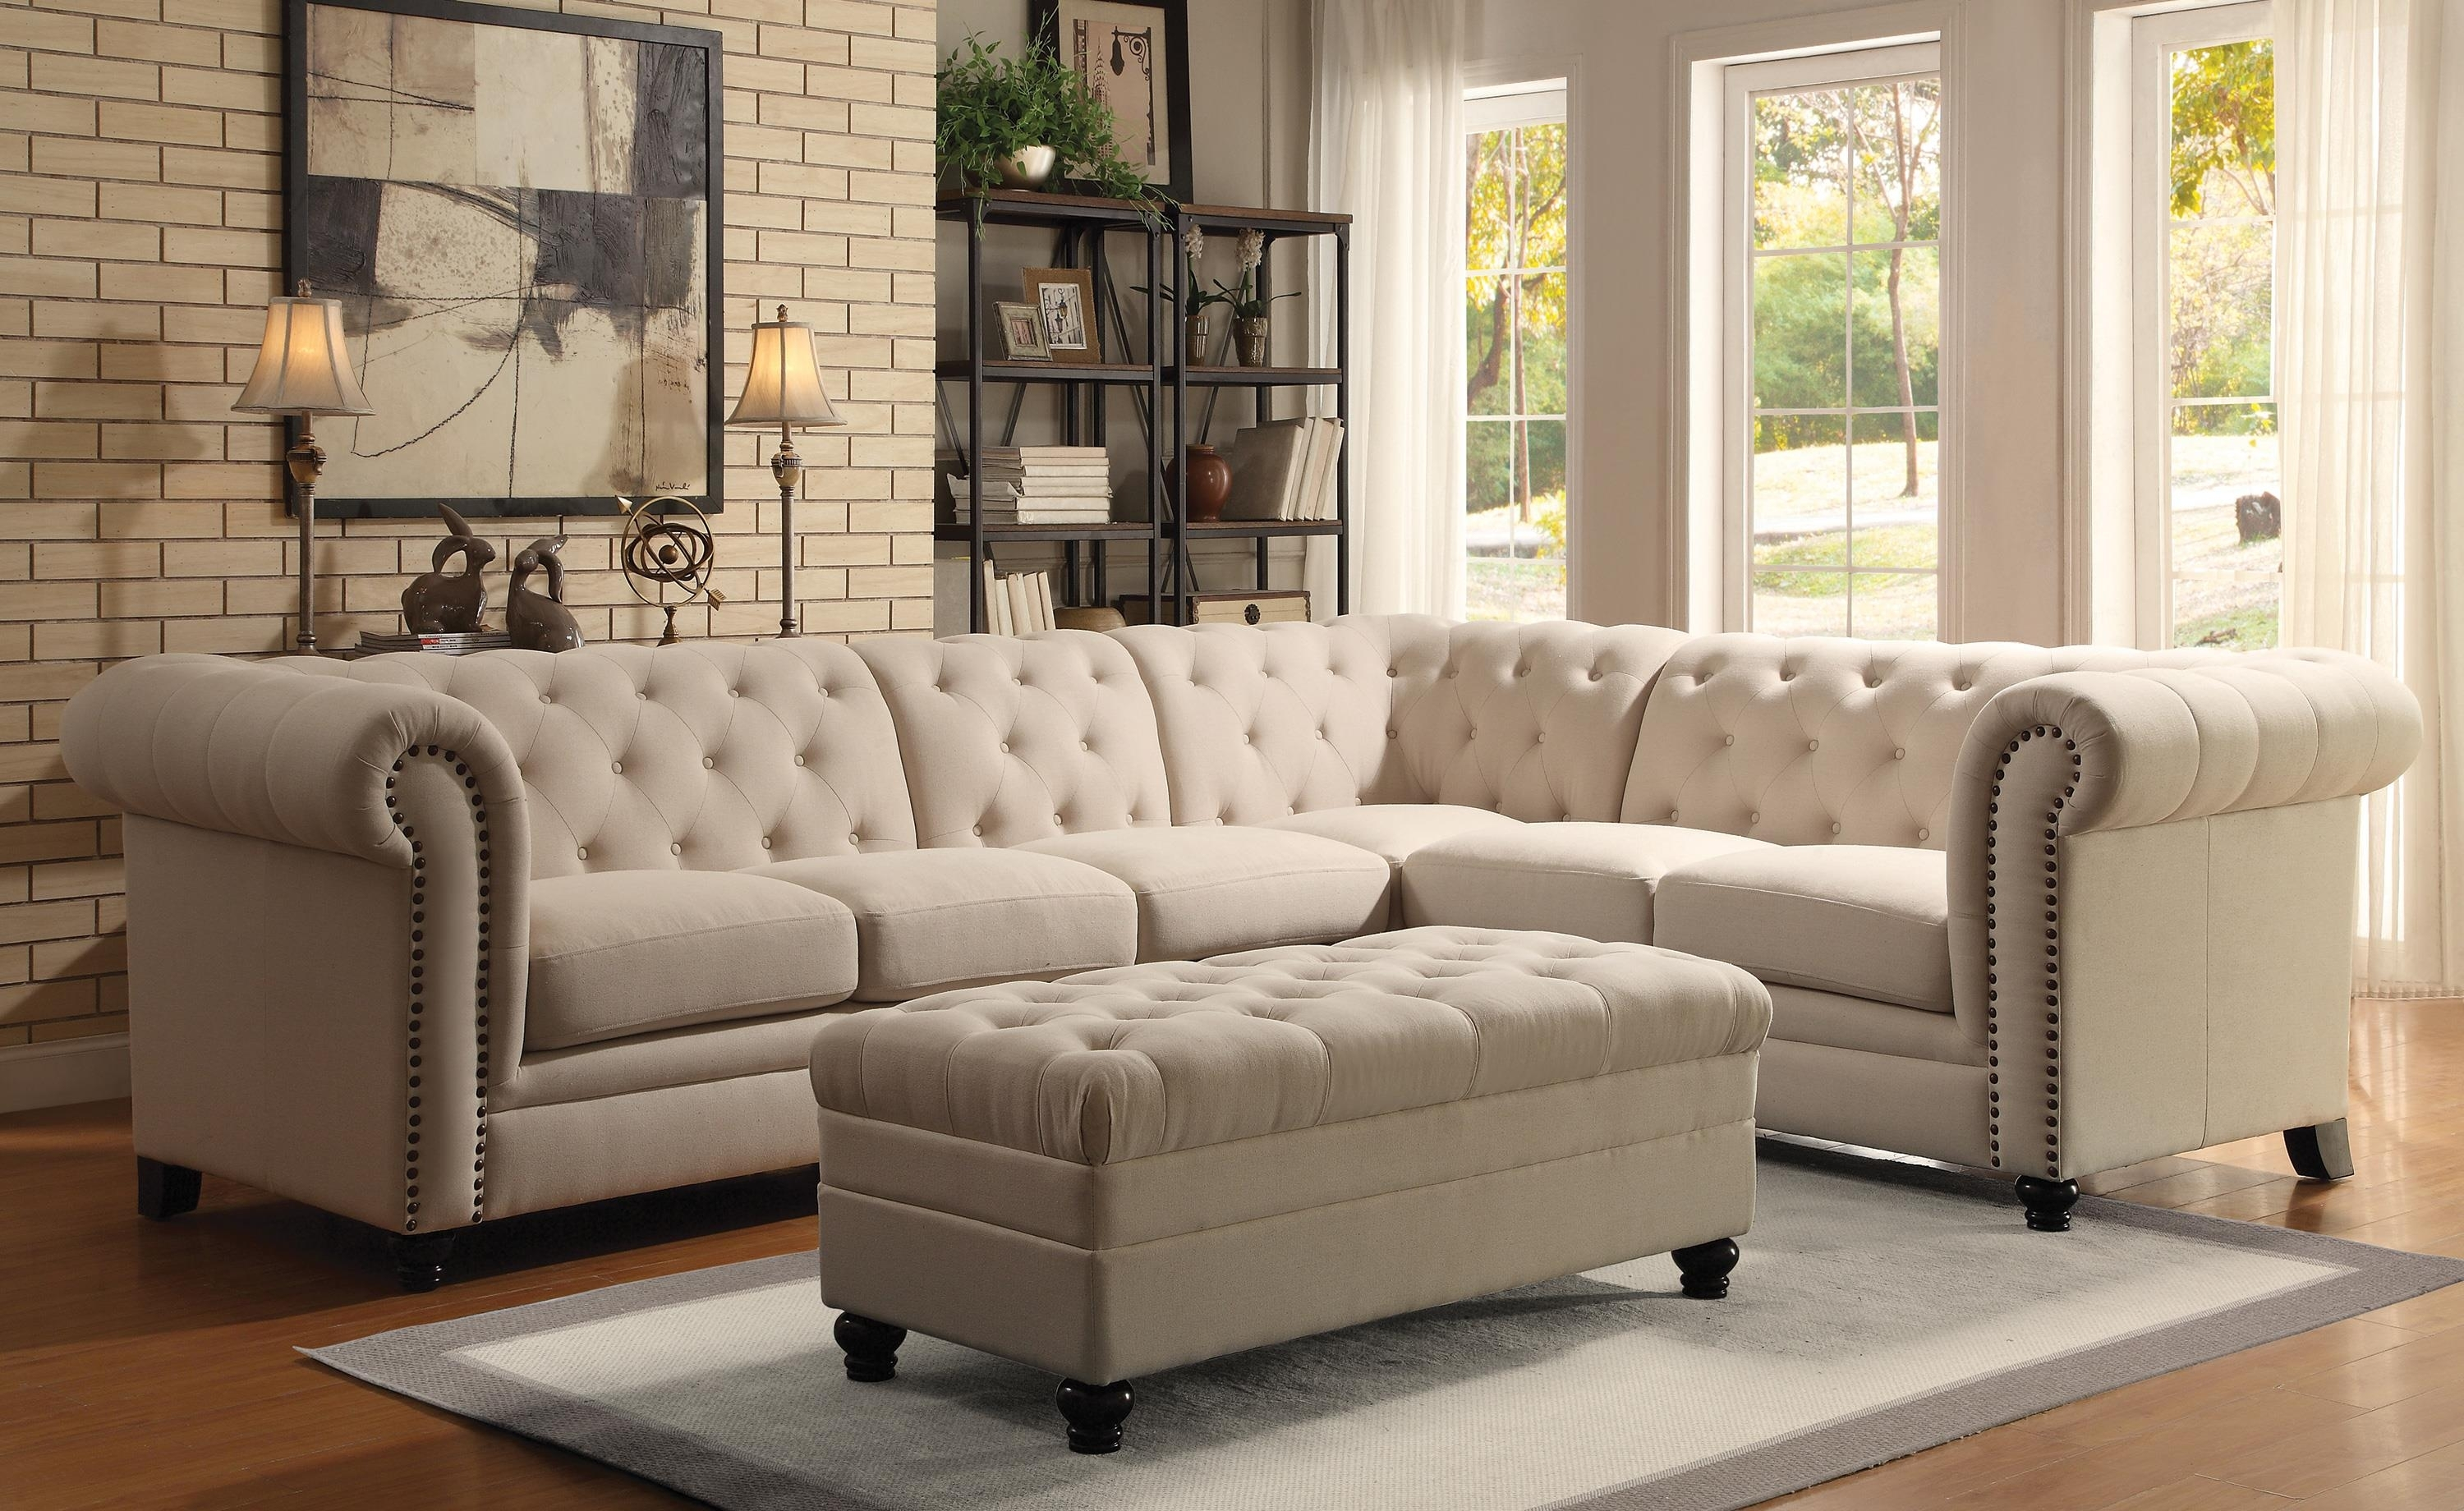 Uncategorized. Concepts Tufted Sectional With Chaise: Sectional Inside Elegant Sectional Sofas (Photo 9 of 10)